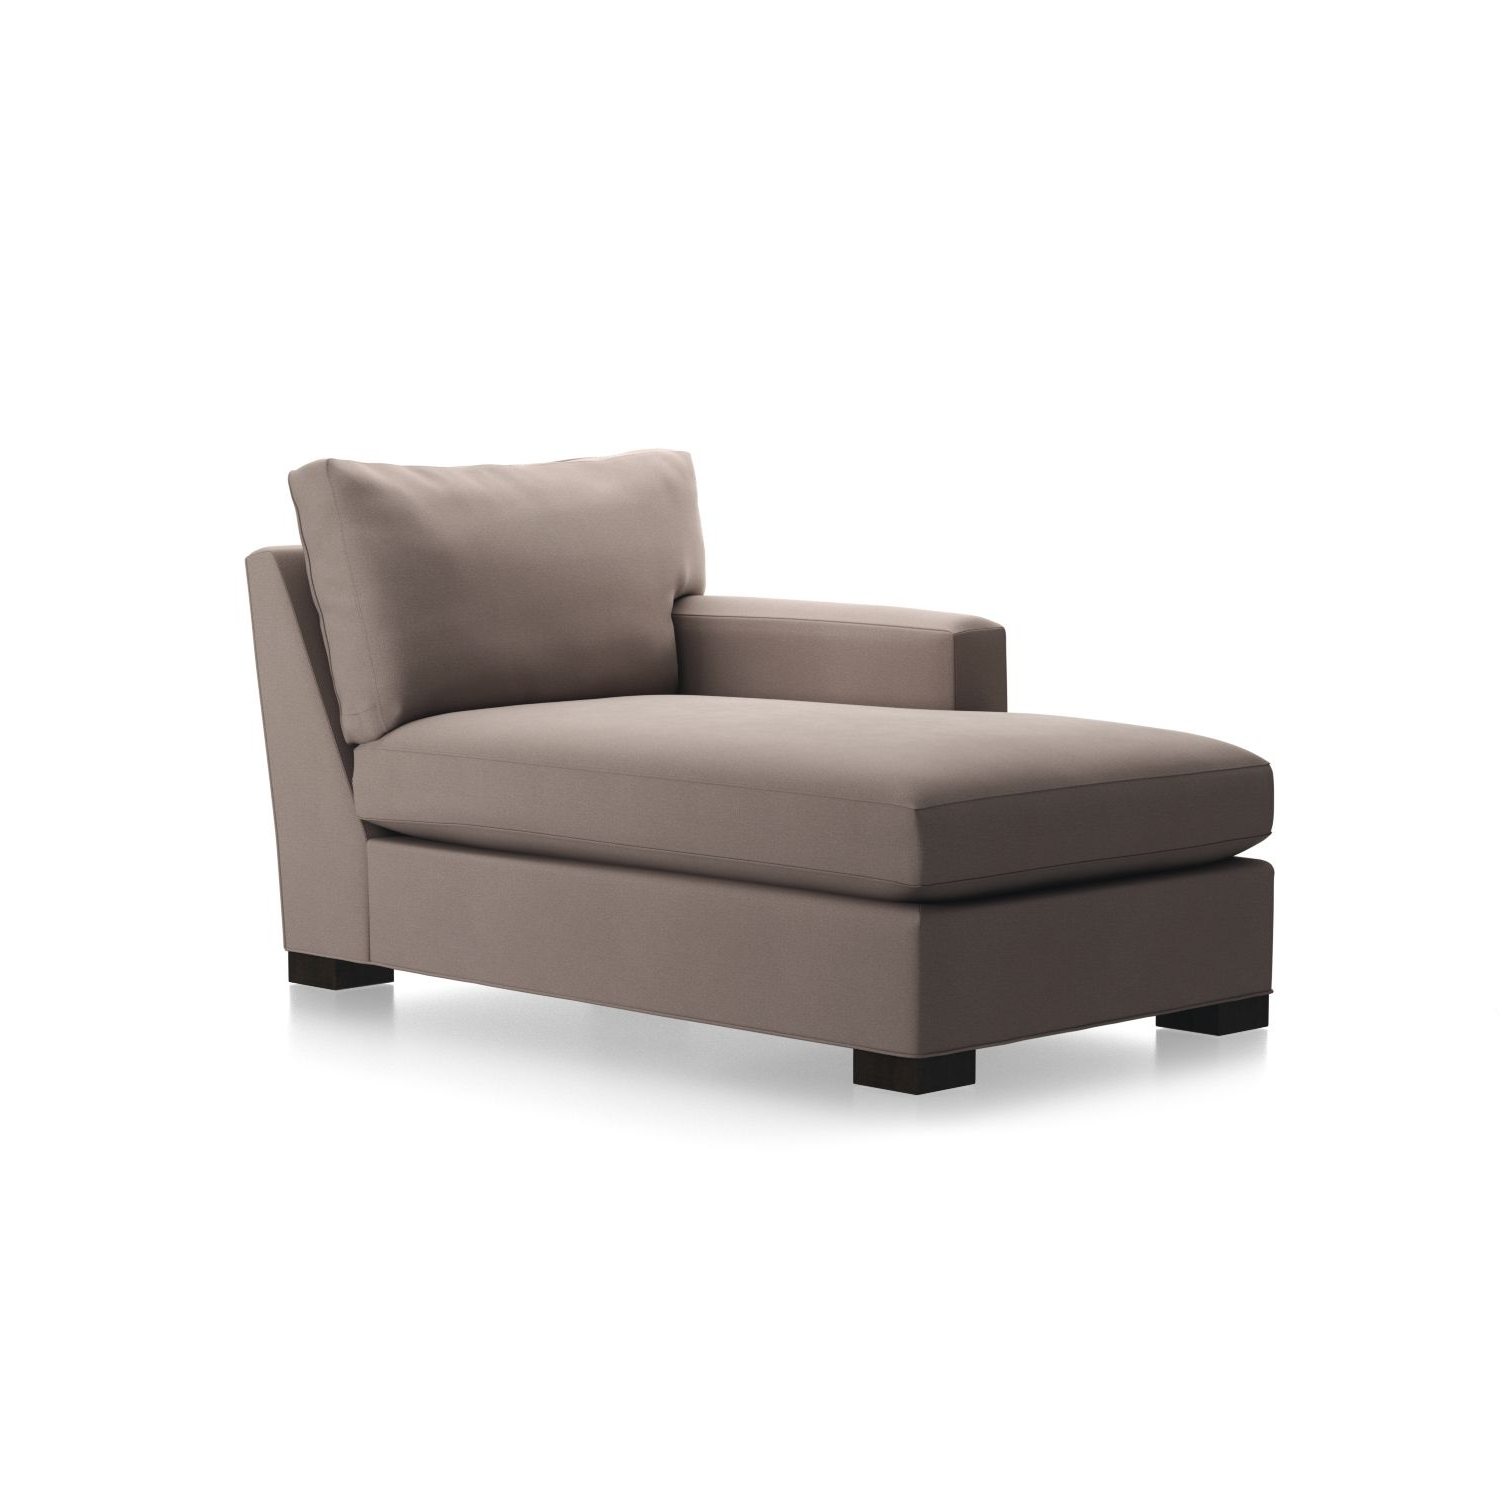 Well Known Crate And Barrel Chaises Within Axis Ii Left Arm Chaise Lounge In Chaises + Reviews (View 7 of 15)